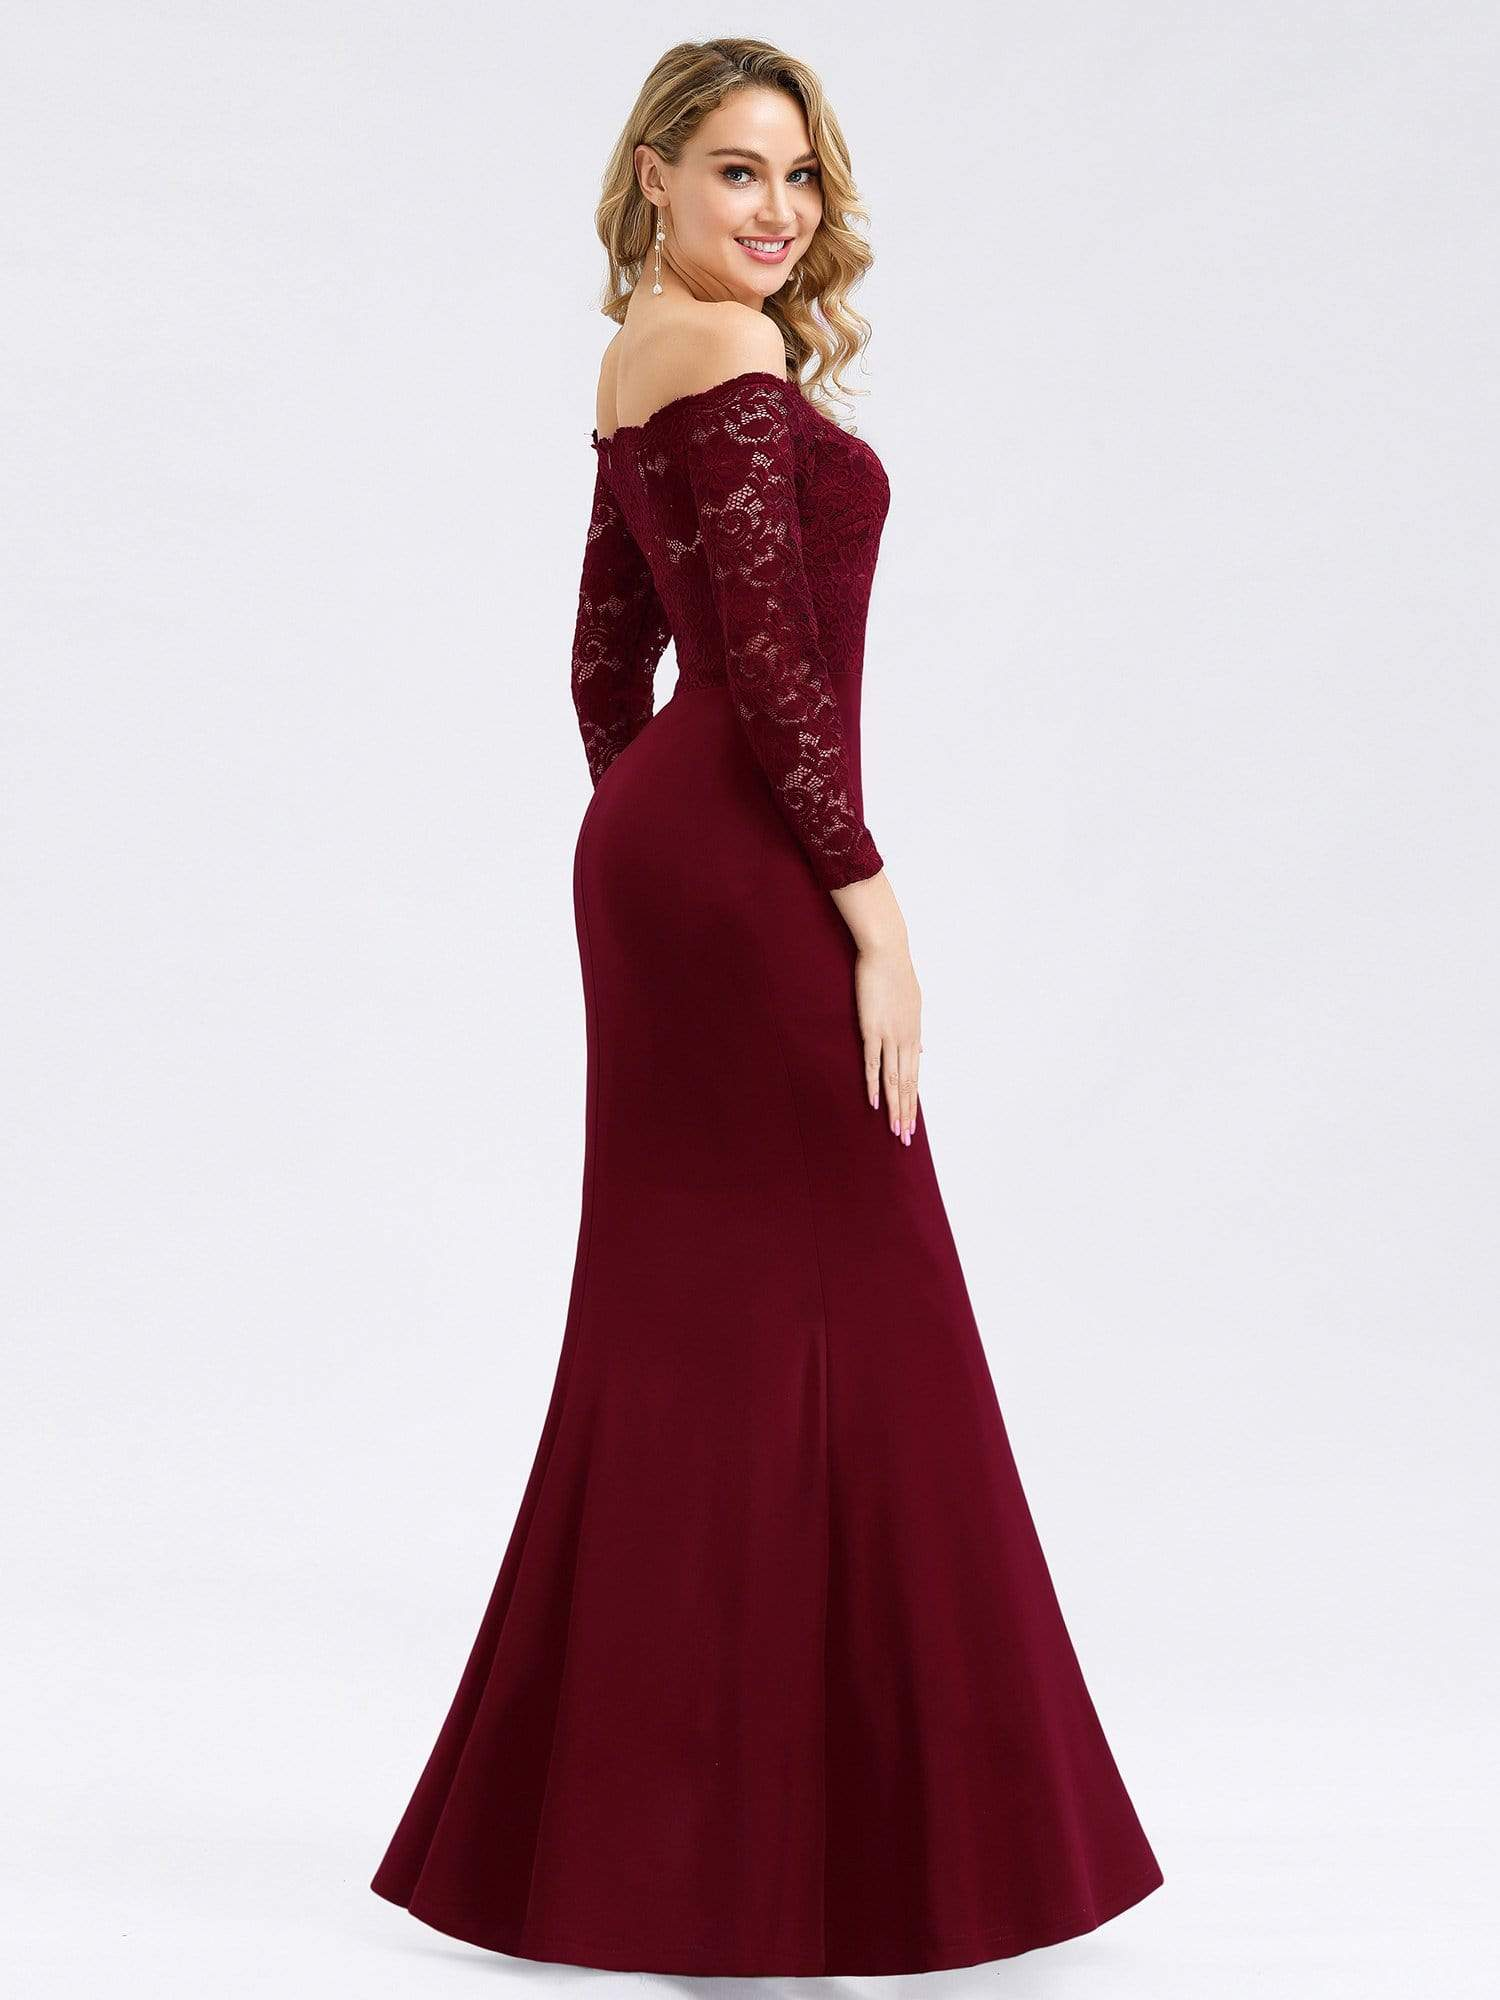 Plus Size Prom Dresses With Long Sleeve Velvet V Neck Floor Length Ever Pretty Us